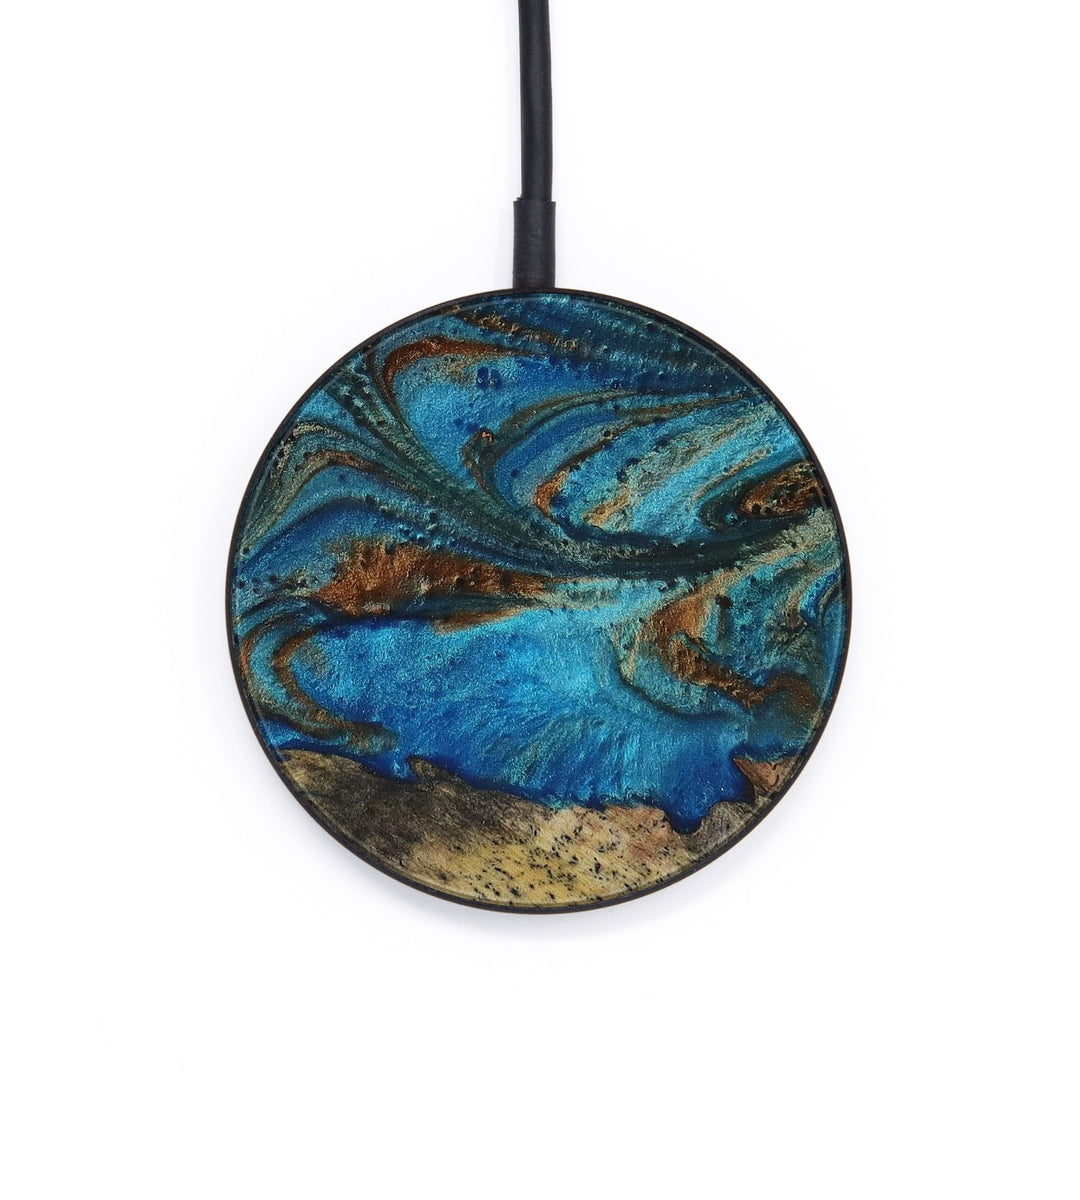 Circle Wood+Resin Wireless Charger - Camellia (Teal & Gold, 393171)